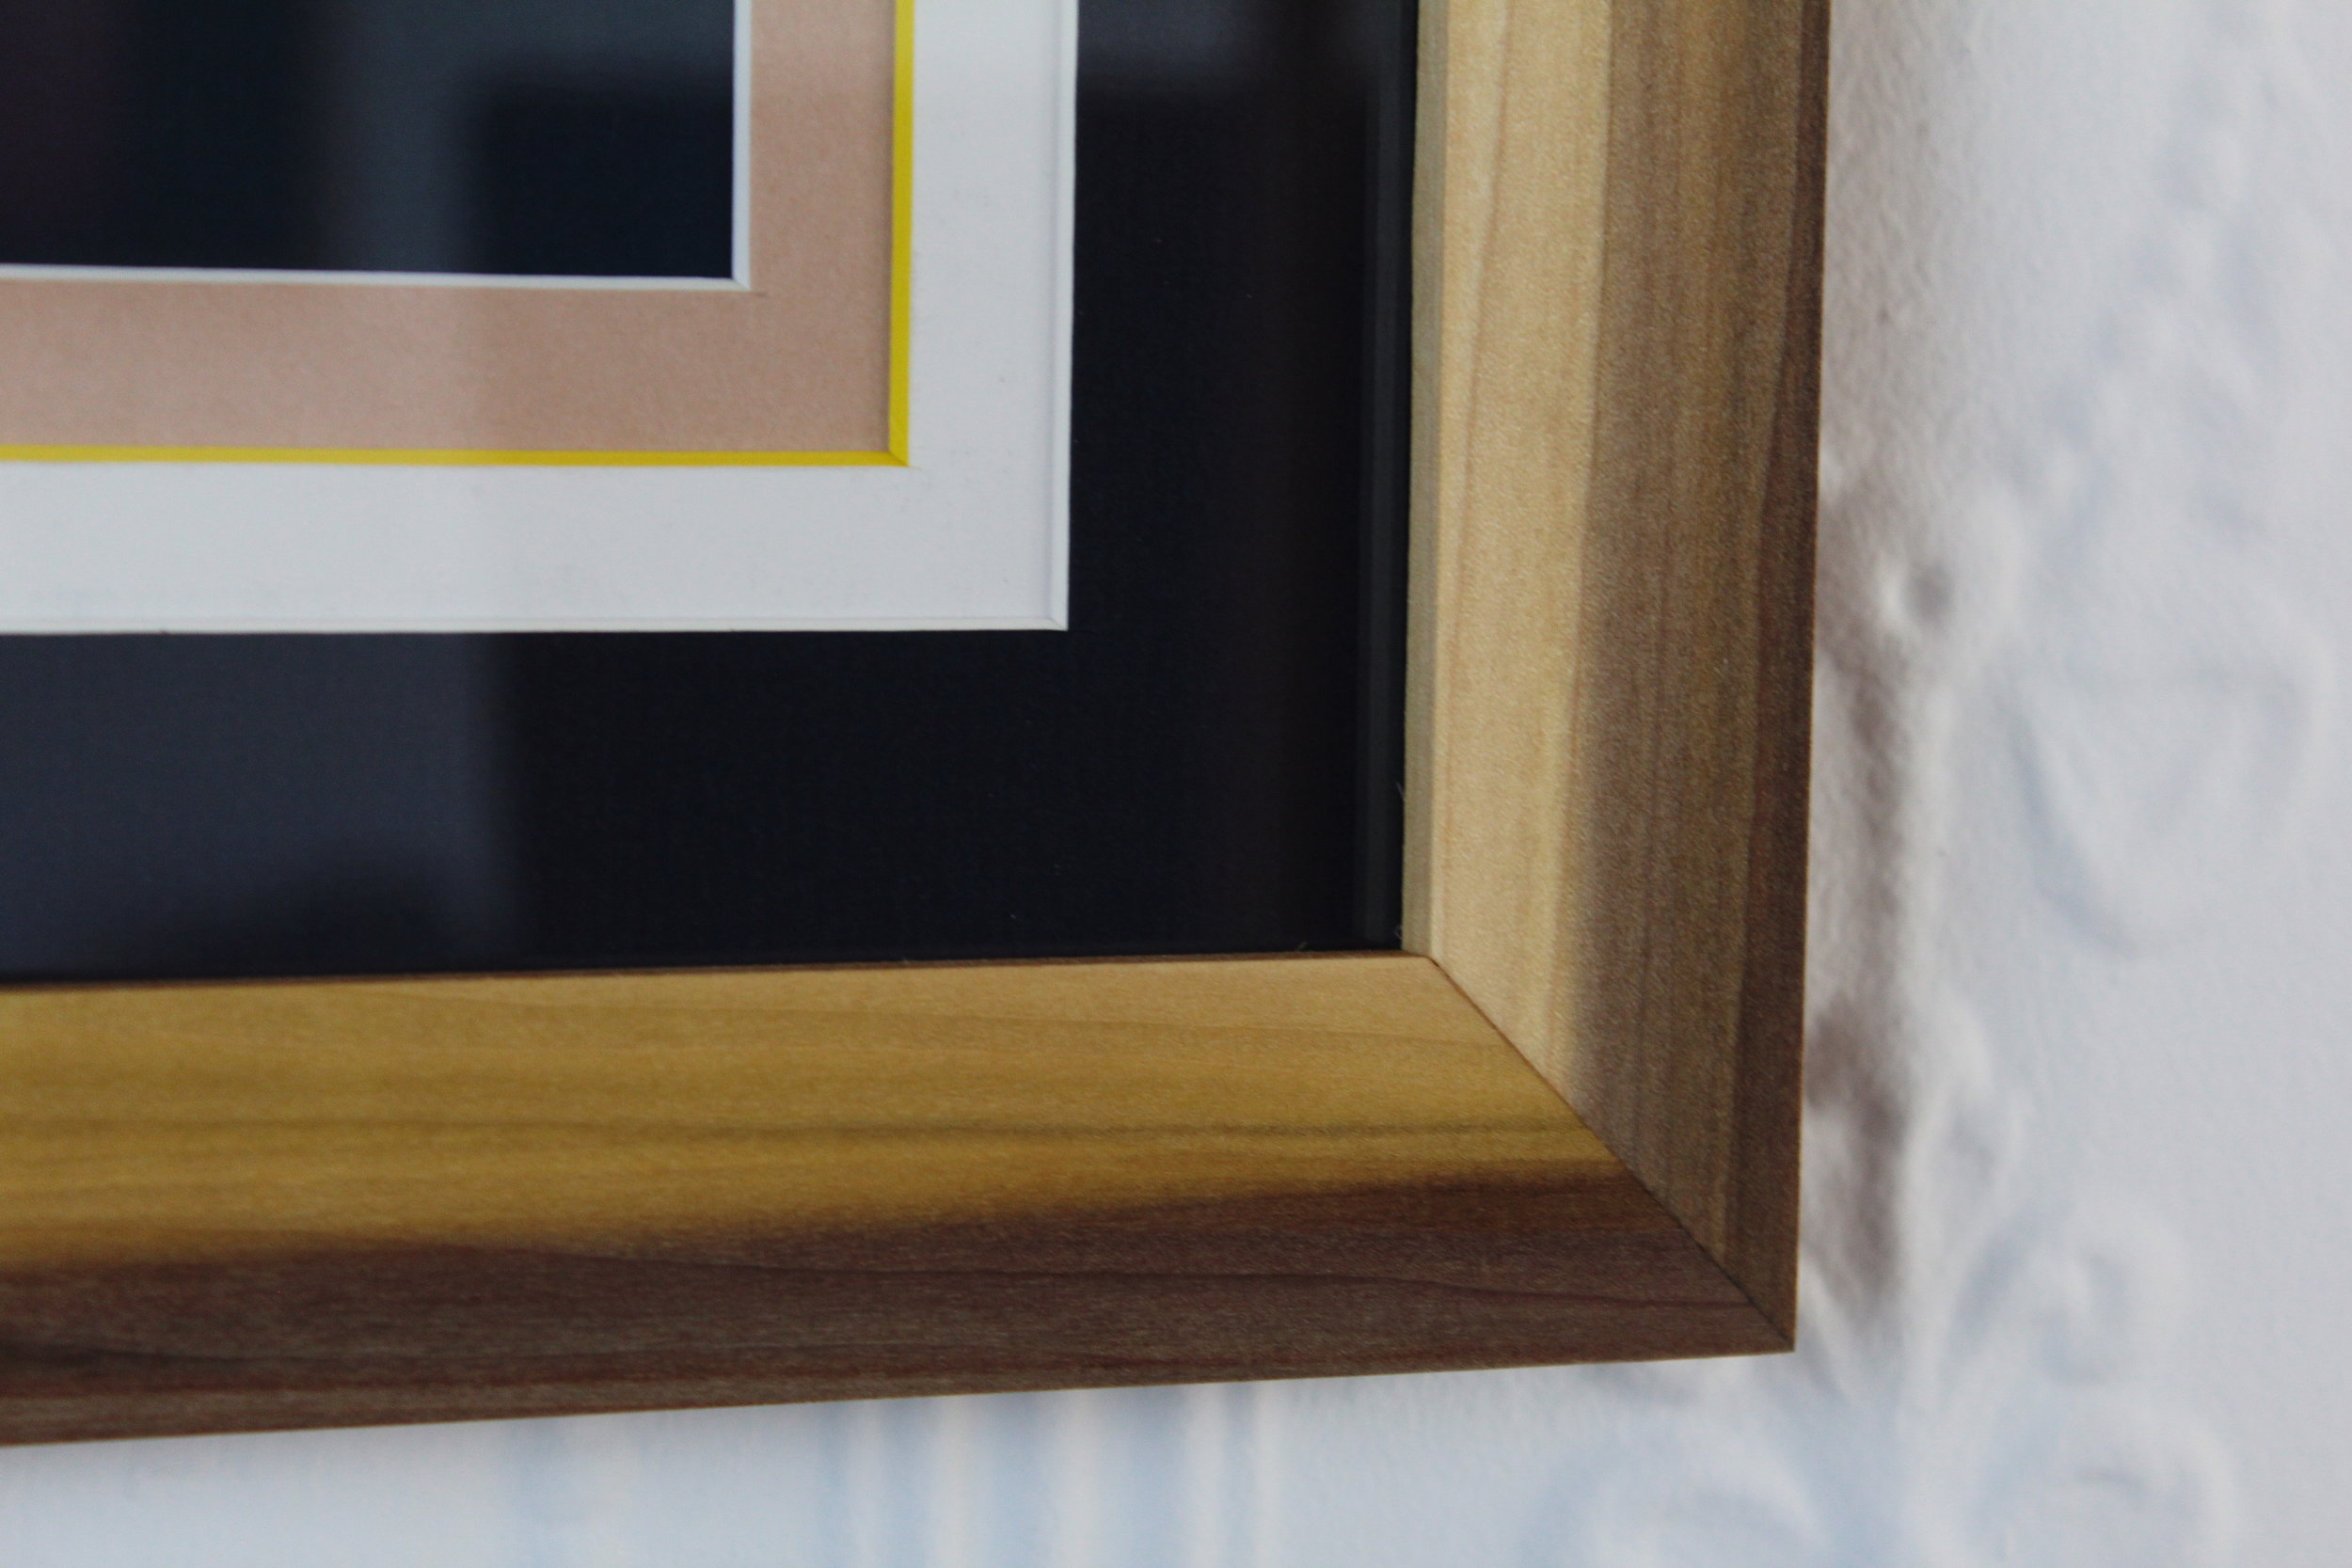 WALNUT FRAME SAP WOOD AND HEART WOOD MEETING  FUNKY MATTE COMBO